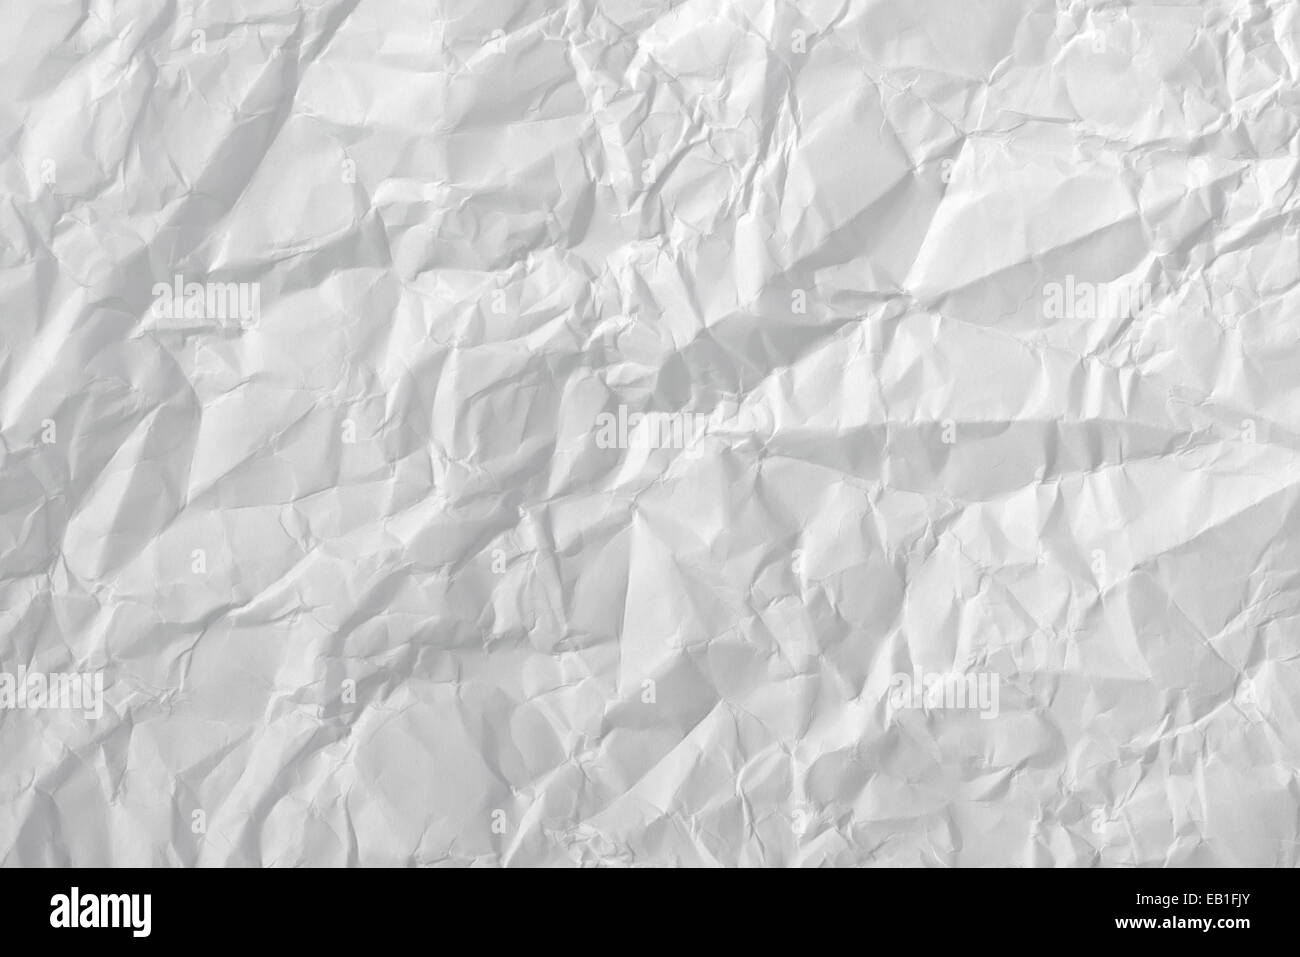 White crumpled creased paper texture for background - Stock Image